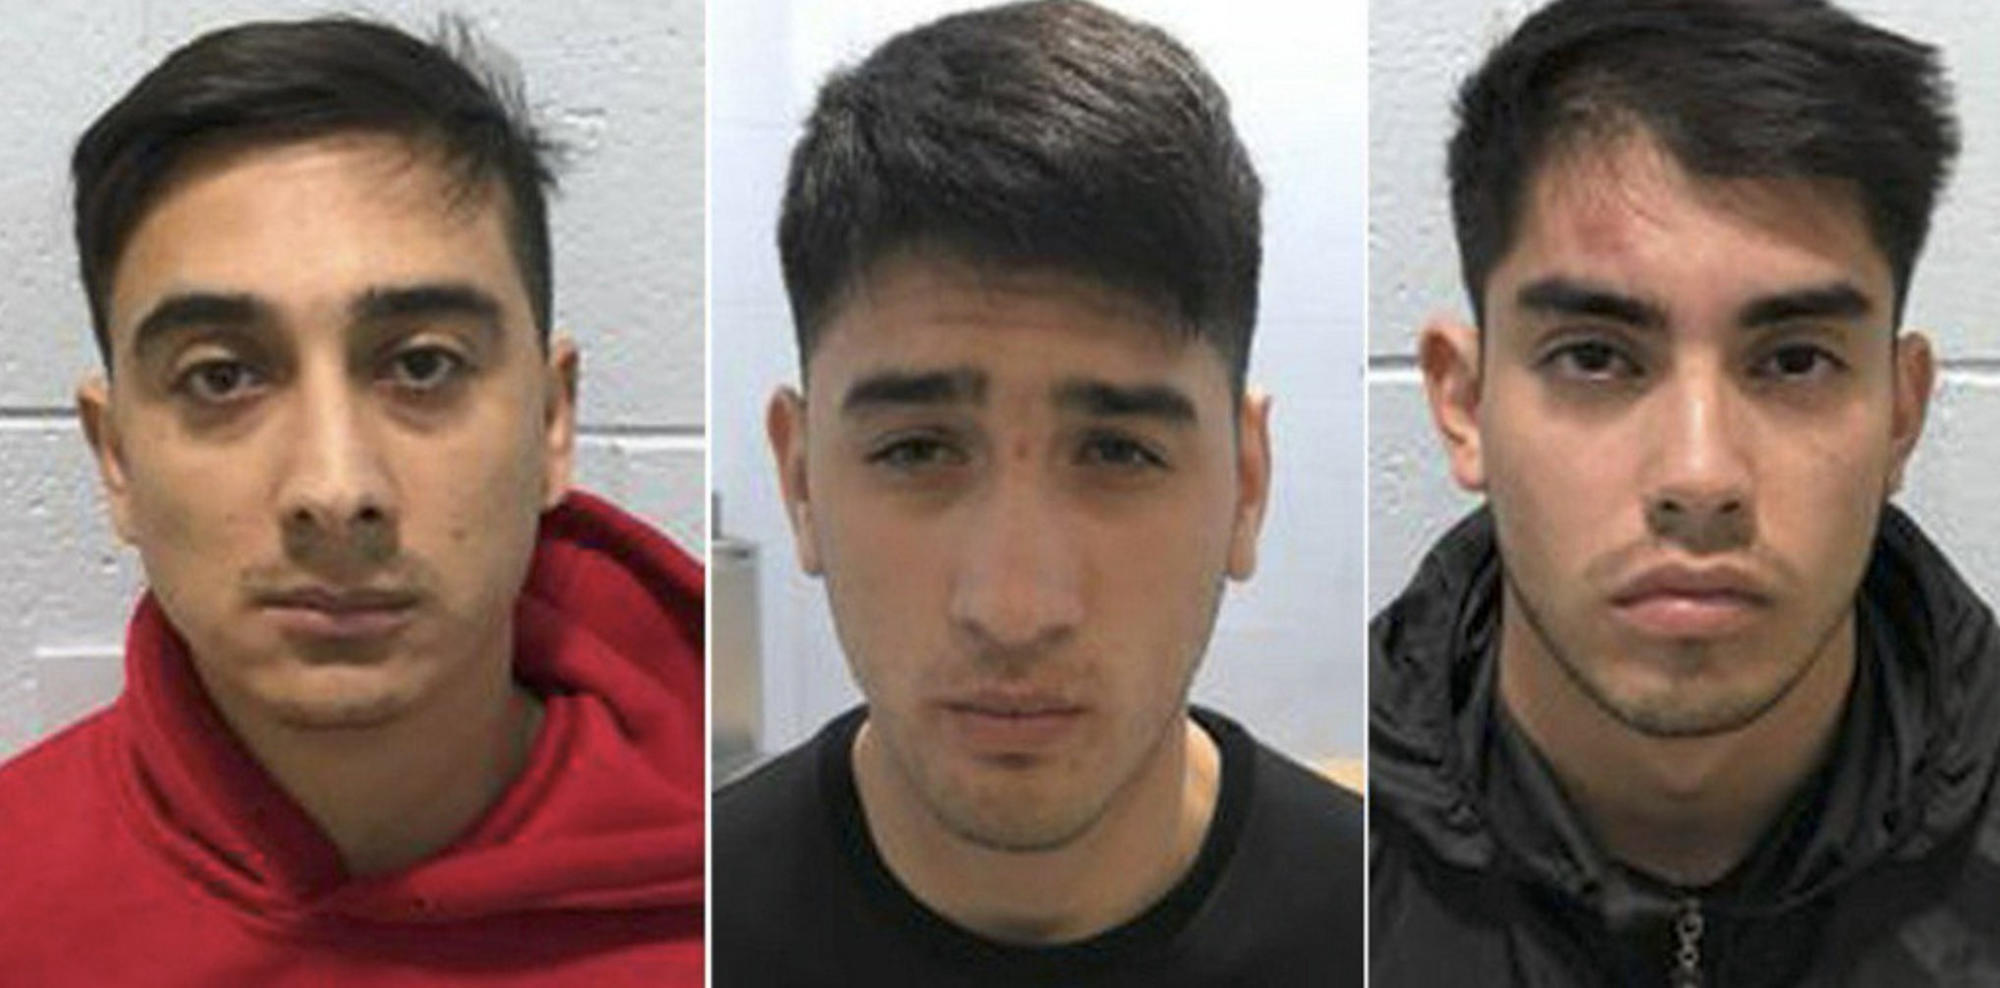 latimes.com - Mark Puente - Dozens of Chilean 'tourists' tied to robbery spree in Southern California, police say